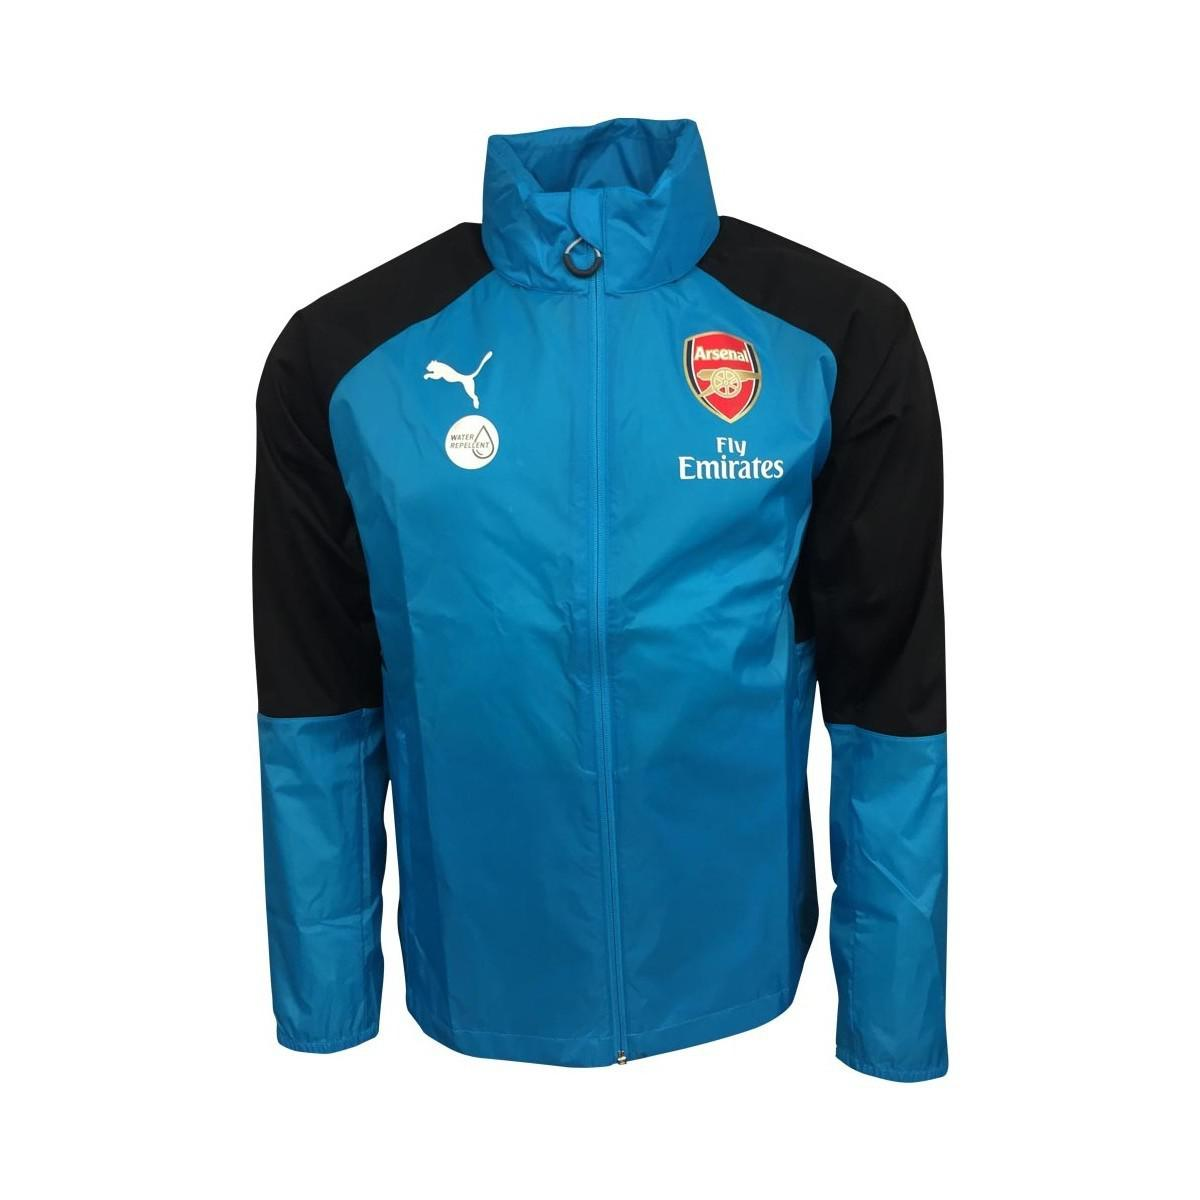 8a605803032a Puma 2017-2018 Arsenal Rain Jacket Women s In Blue in Blue for Men ...